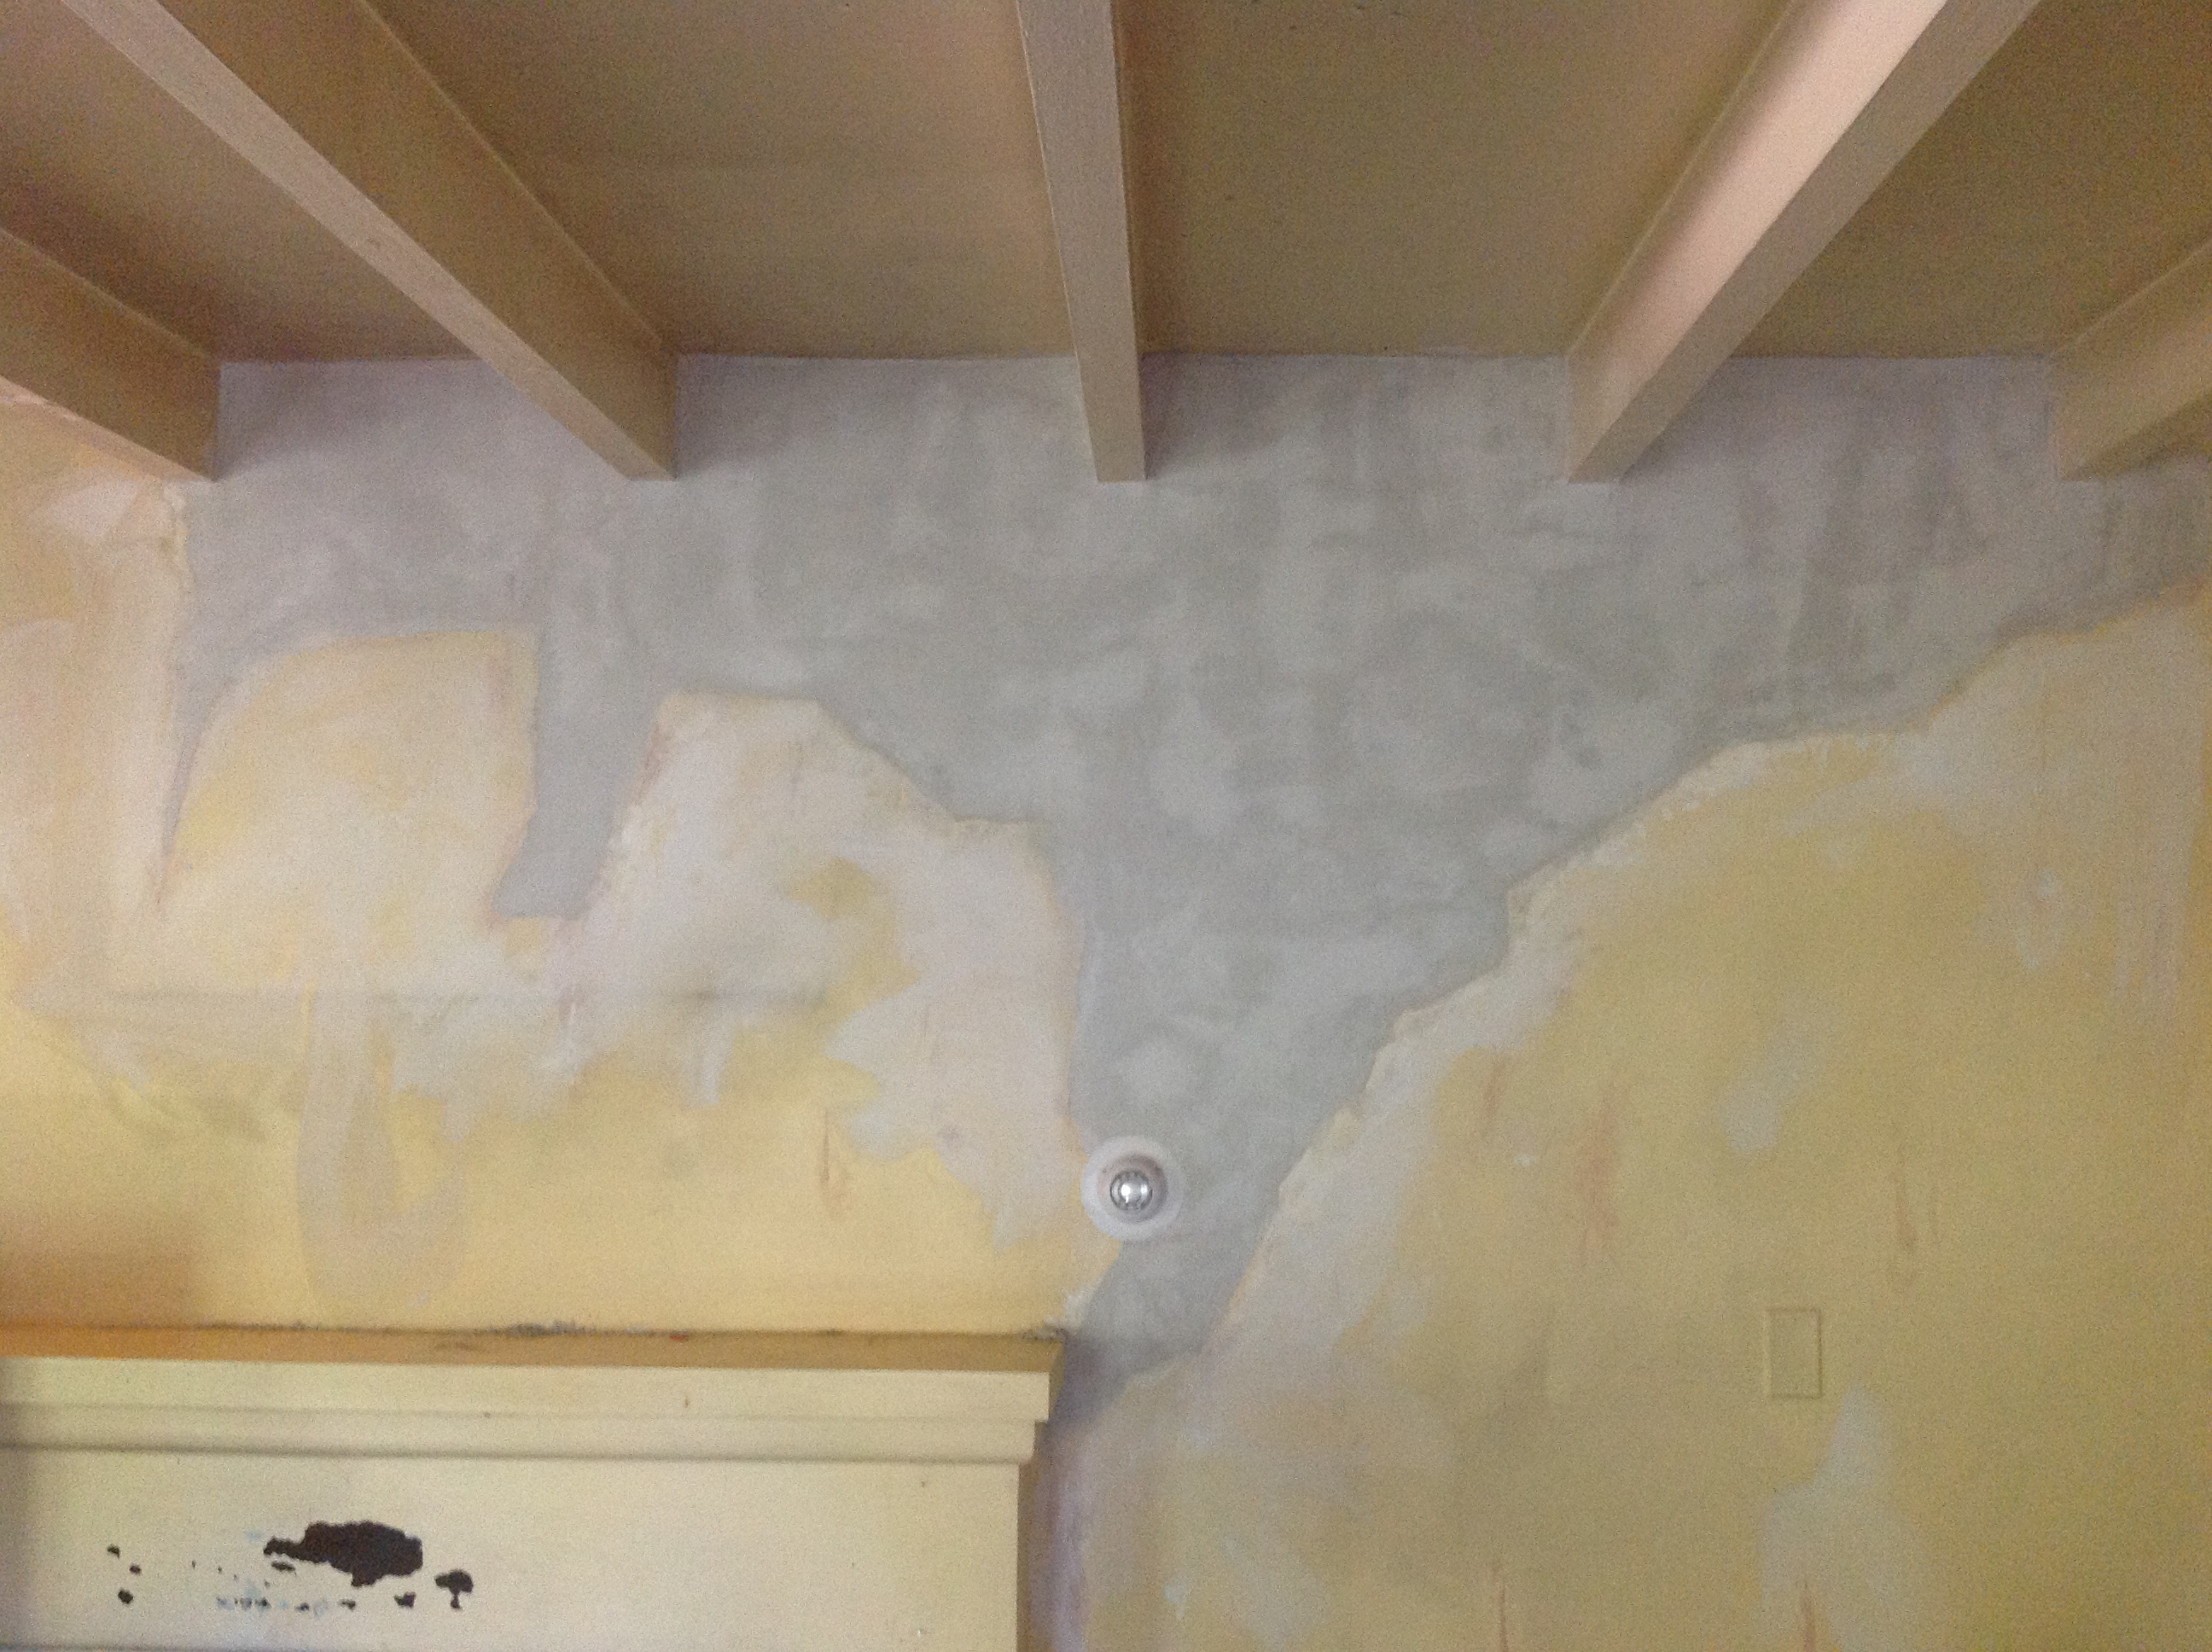 whole back plaster screw ceiling watch render or re repair loose